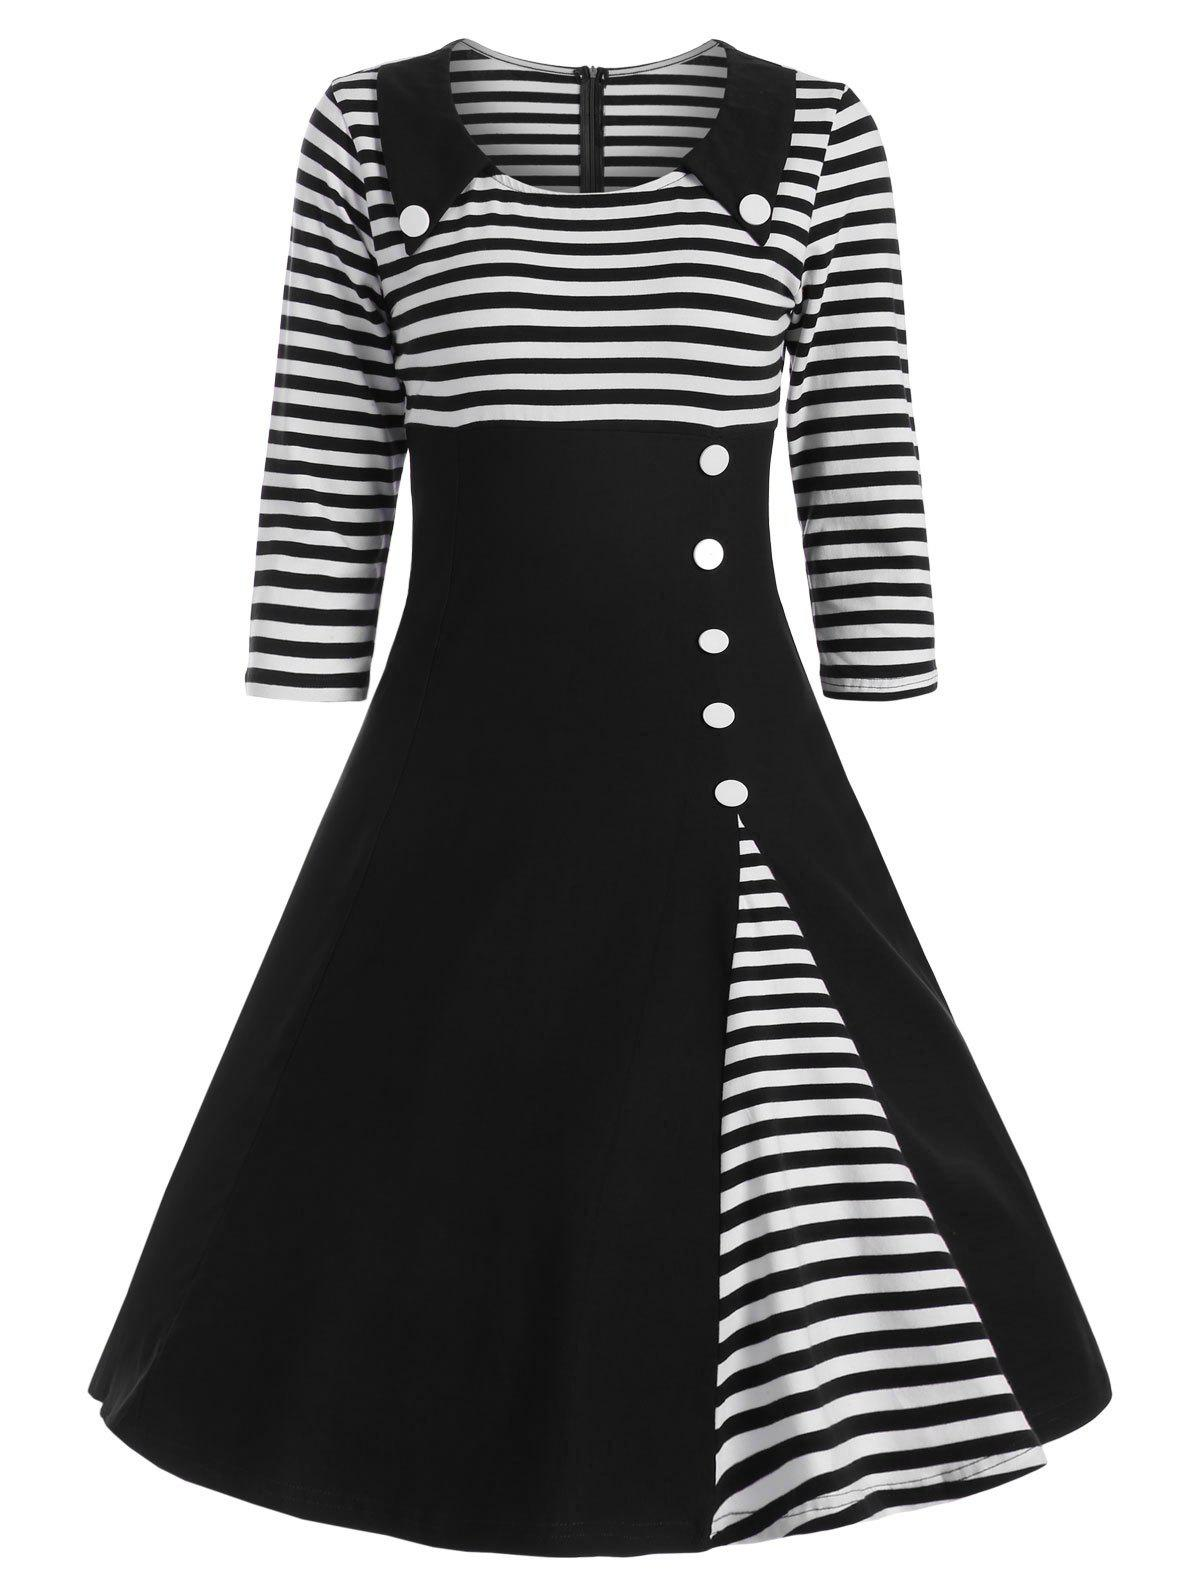 Button Embellished Striped A Line Vintage DressWOMEN<br><br>Size: XL; Color: BLACK; Style: Vintage; Material: Polyester,Spandex; Silhouette: A-Line; Dresses Length: Knee-Length; Neckline: Round Collar; Sleeve Length: 3/4 Length Sleeves; Embellishment: Button; Pattern Type: Striped; With Belt: No; Season: Fall,Spring; Weight: 0.4200kg; Package Contents: 1 x Dress;